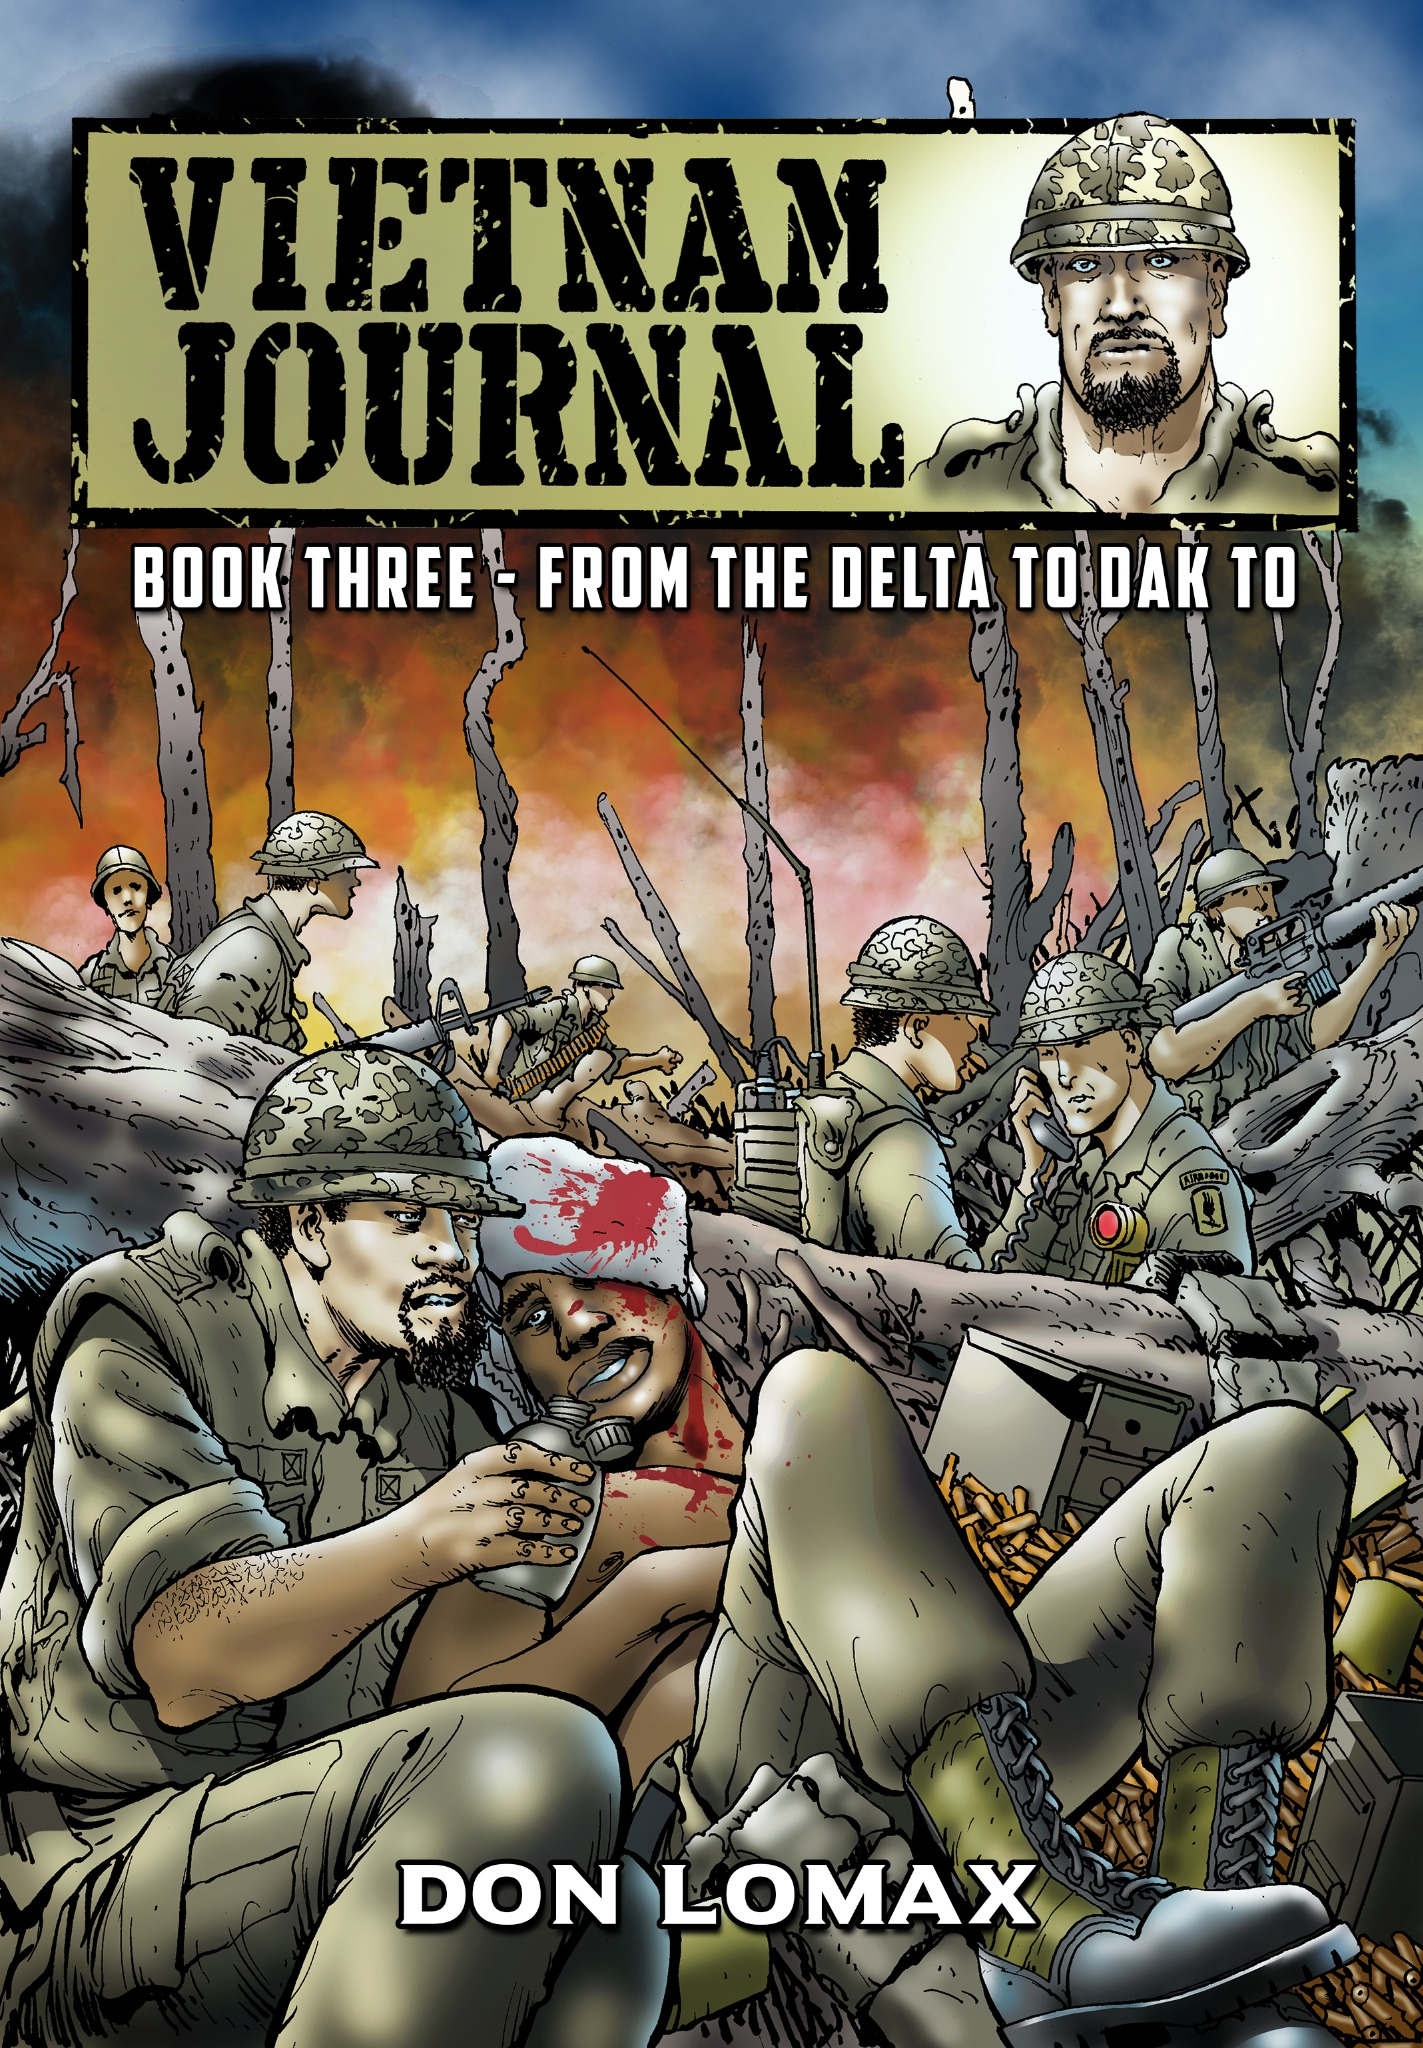 Vietnam Journal: Book 3 - From the Delta to Dak To